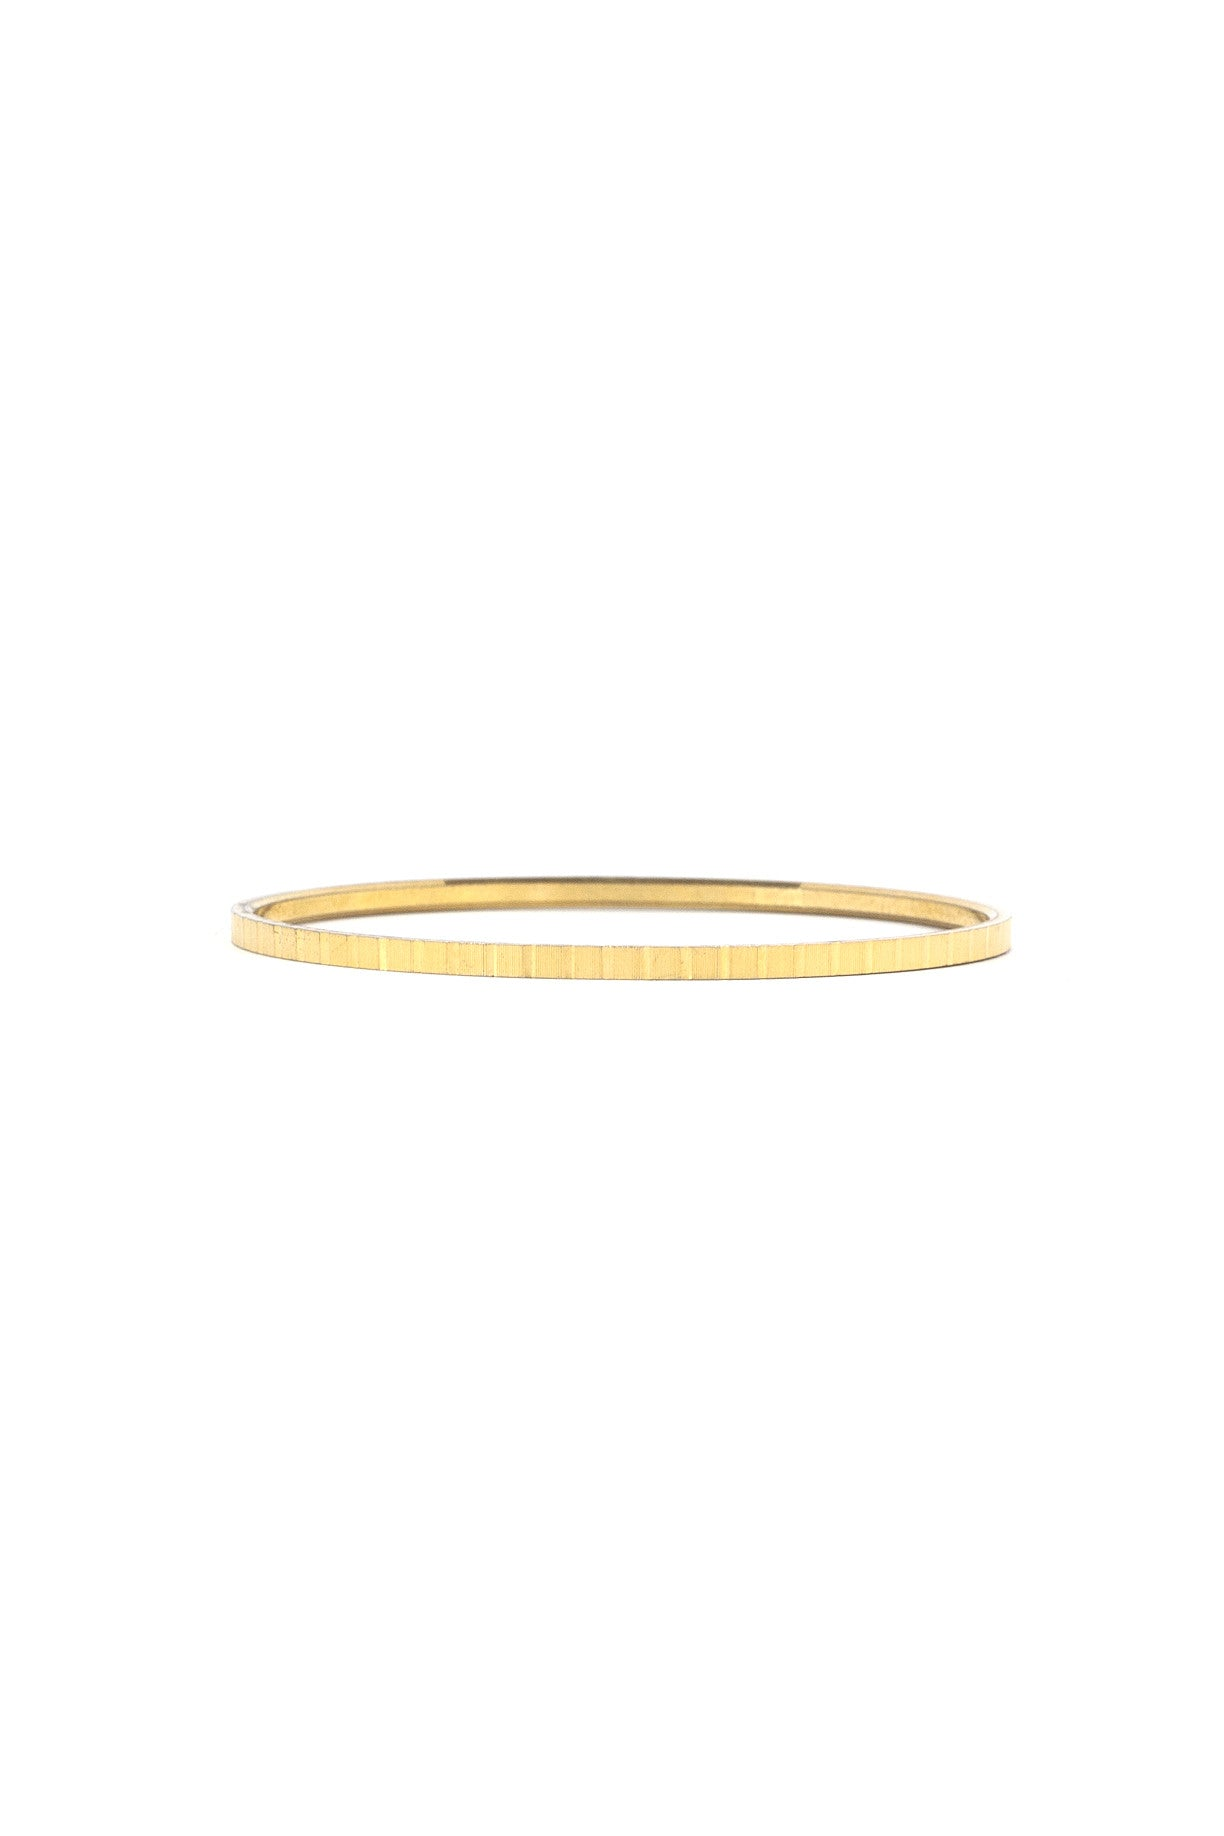 70's__Trifari__Super Slim Etched Bangle